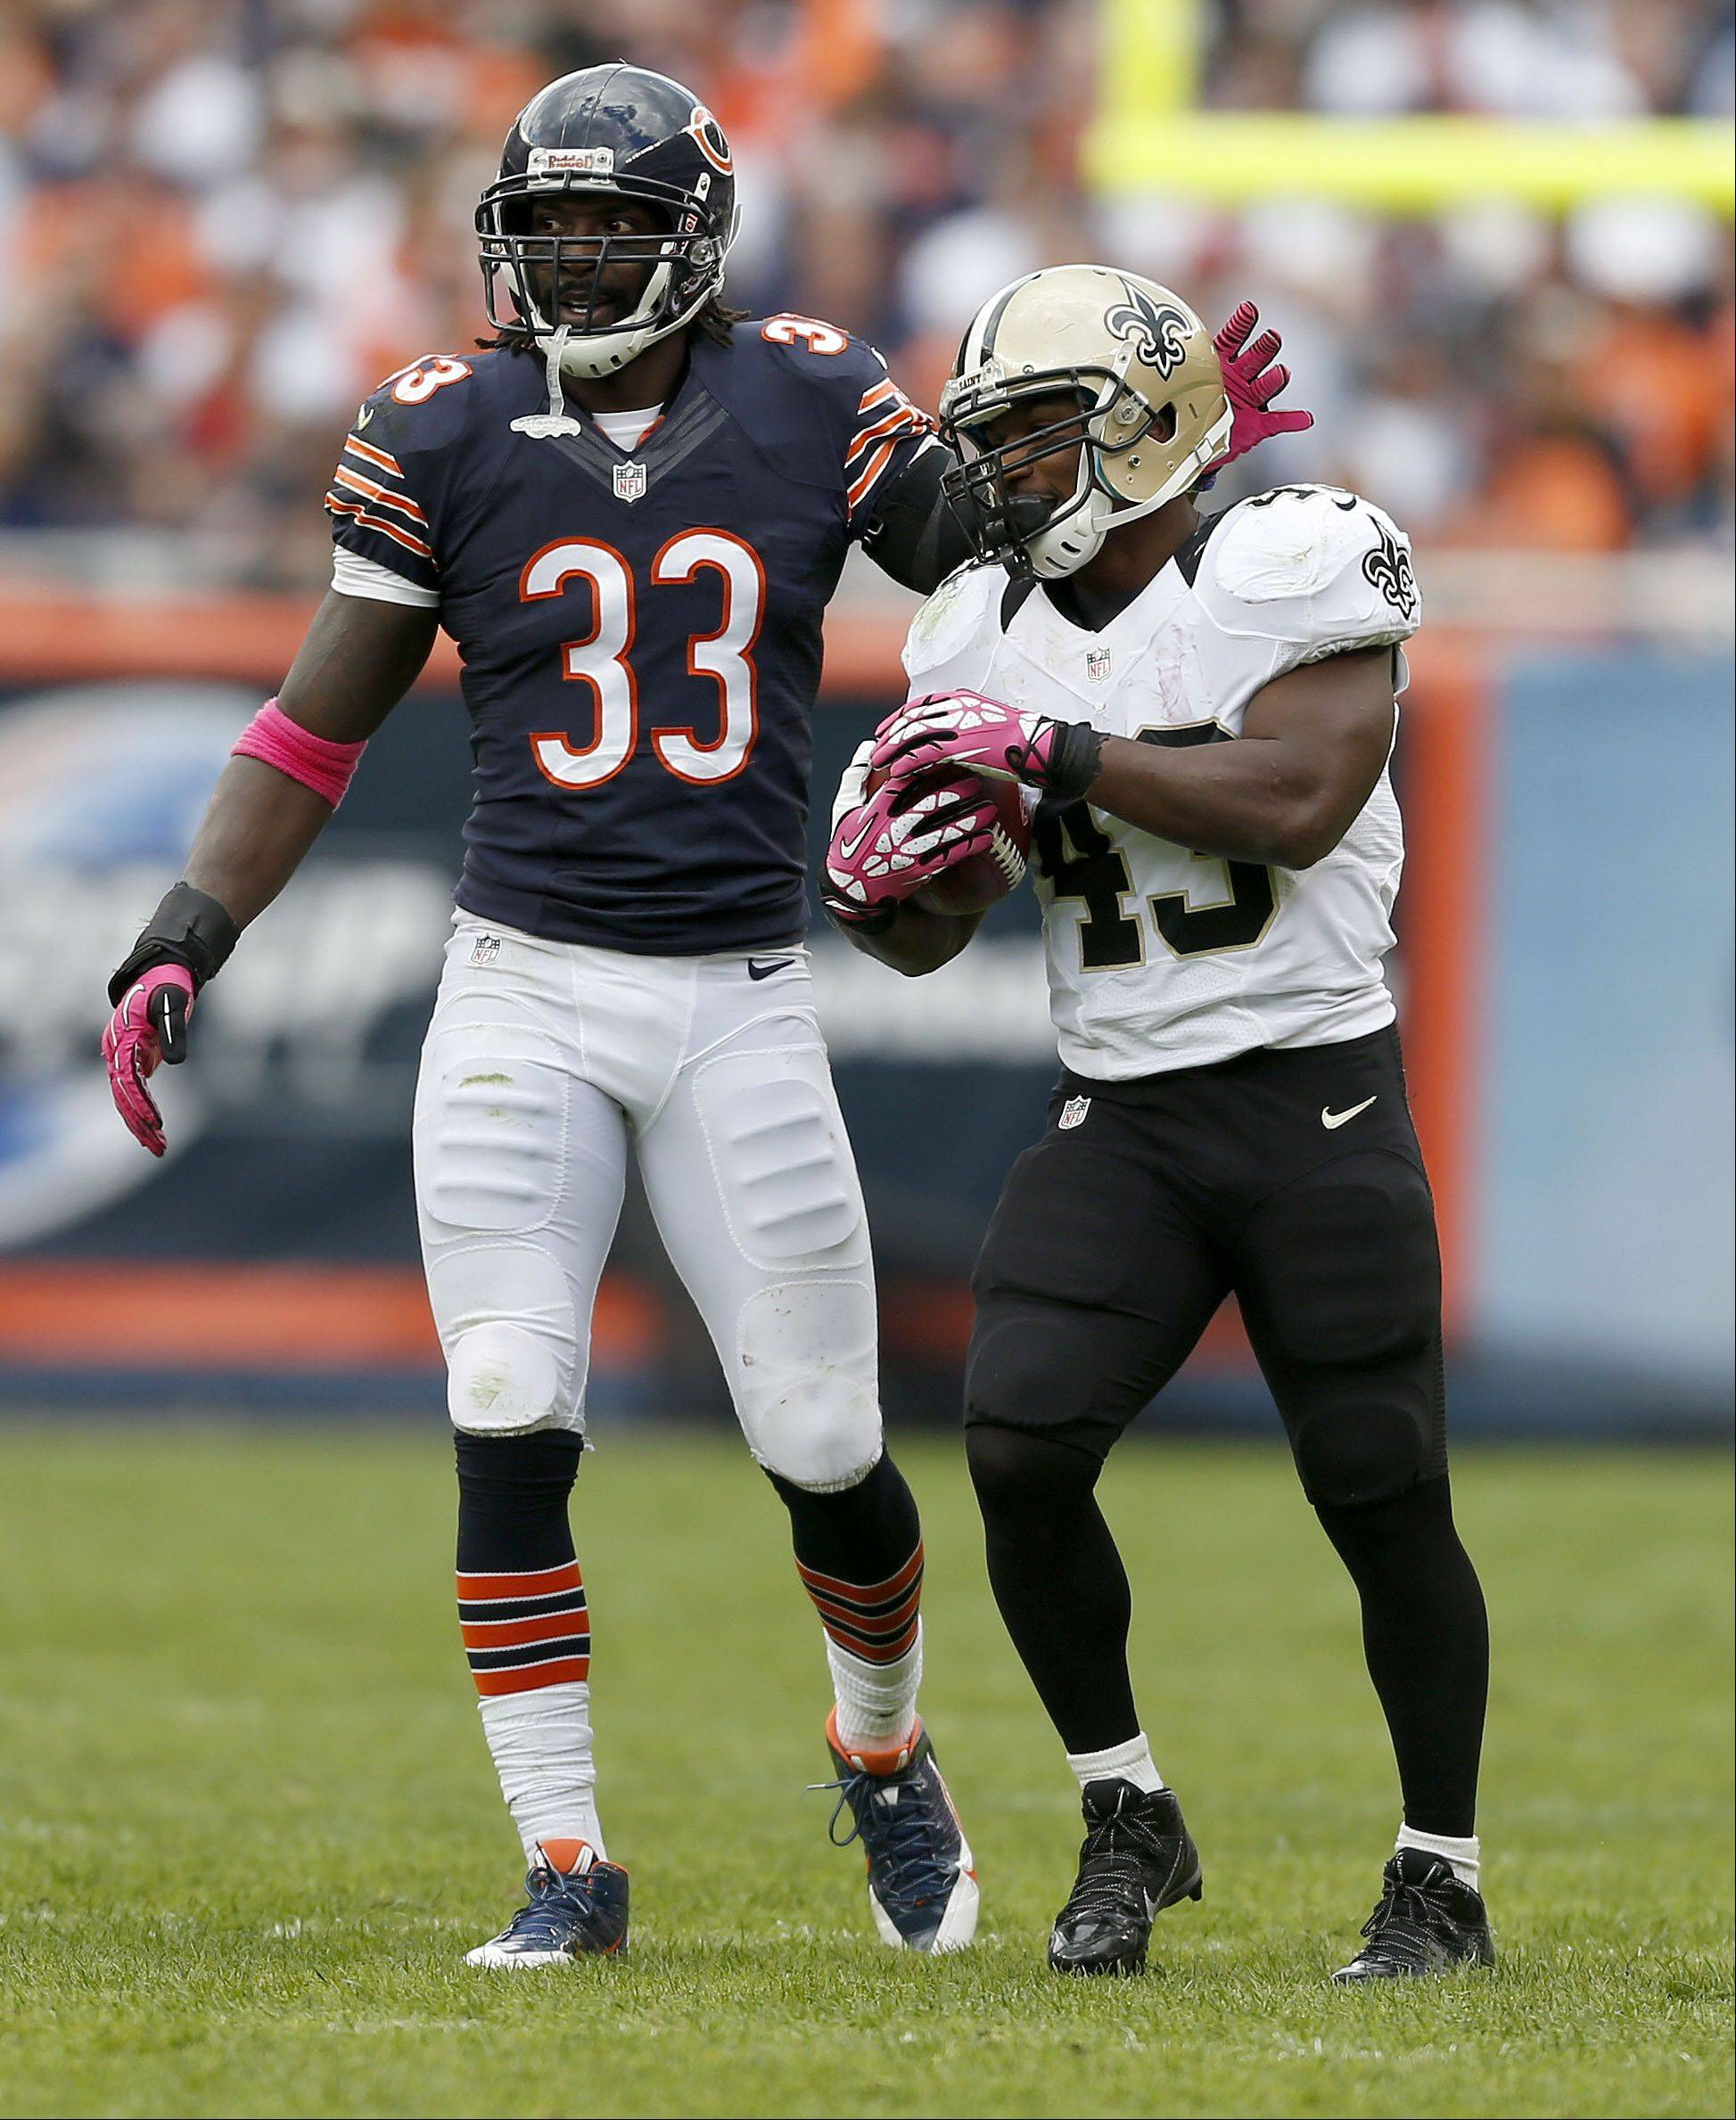 Chicago Bears cornerback Charles Tillman pats New Orleans Saints running back Darren Sproles on the head during the Bears 26-18 loss Sunday at Soldier Field in Chicago.